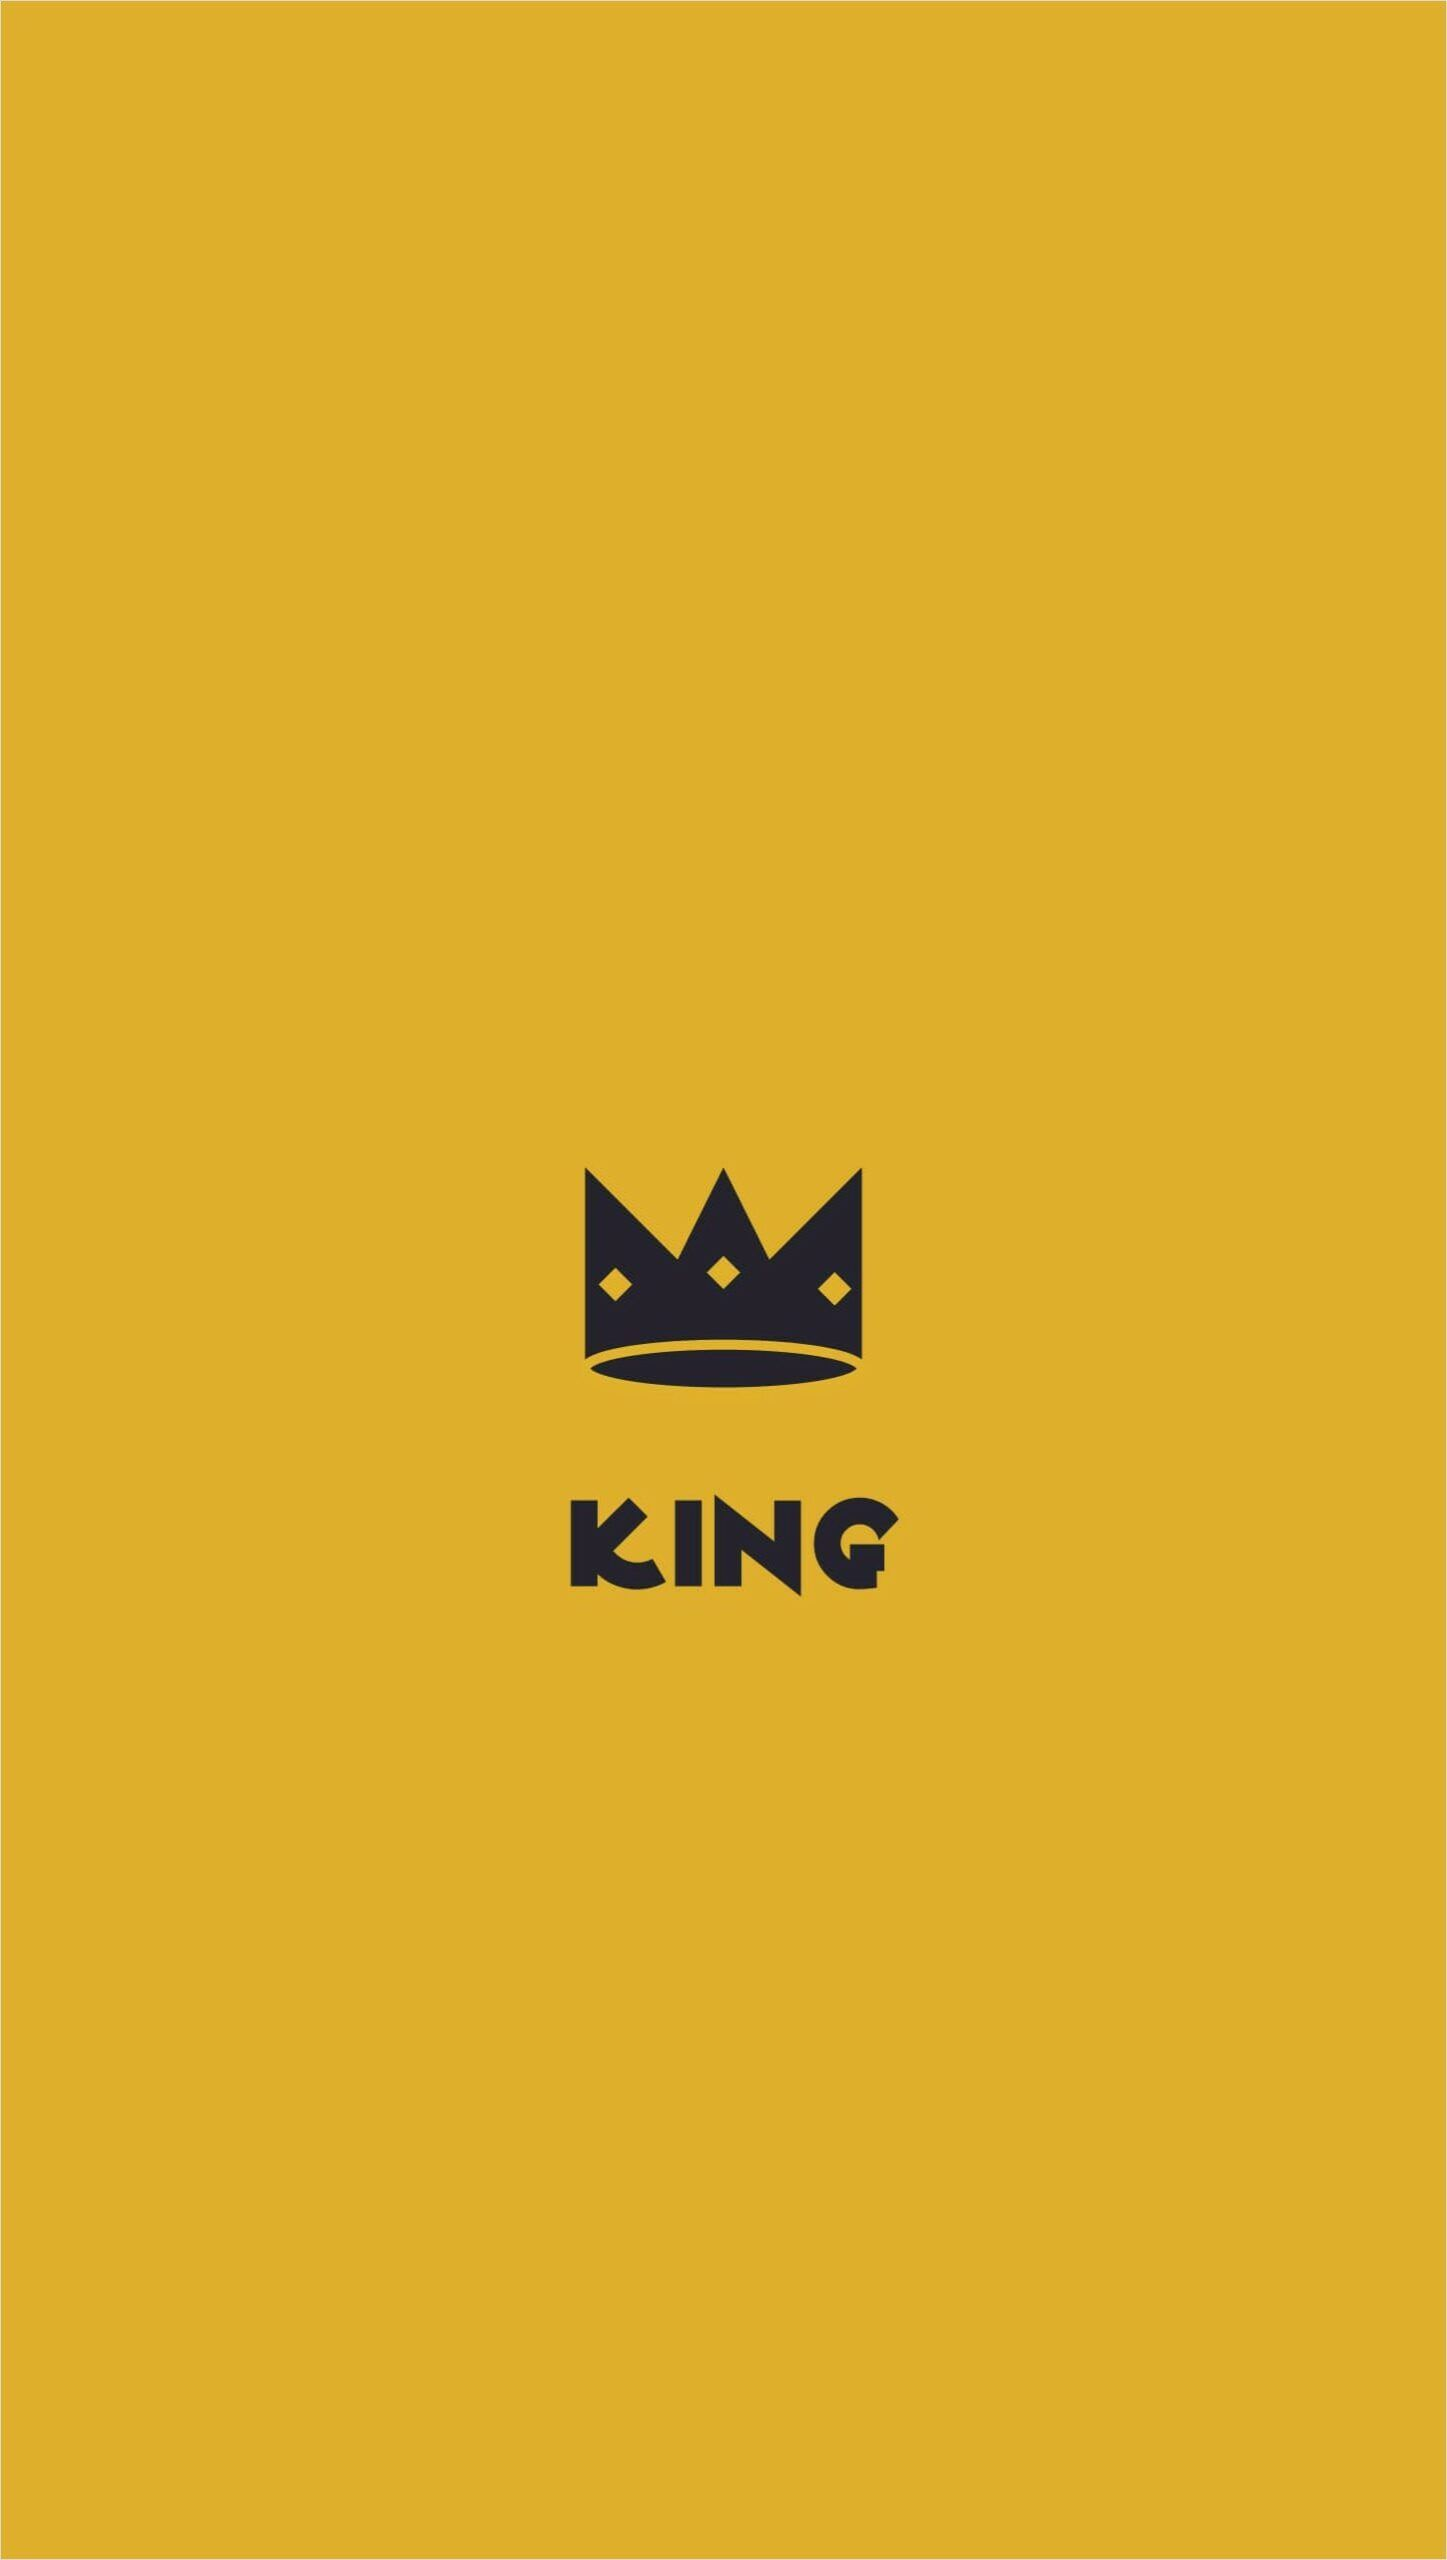 27 4k Wallpaper King In Yellow In 2020 Art Wallpaper Iphone Iphone Wallpaper Off White Hypebeast Wallpaper